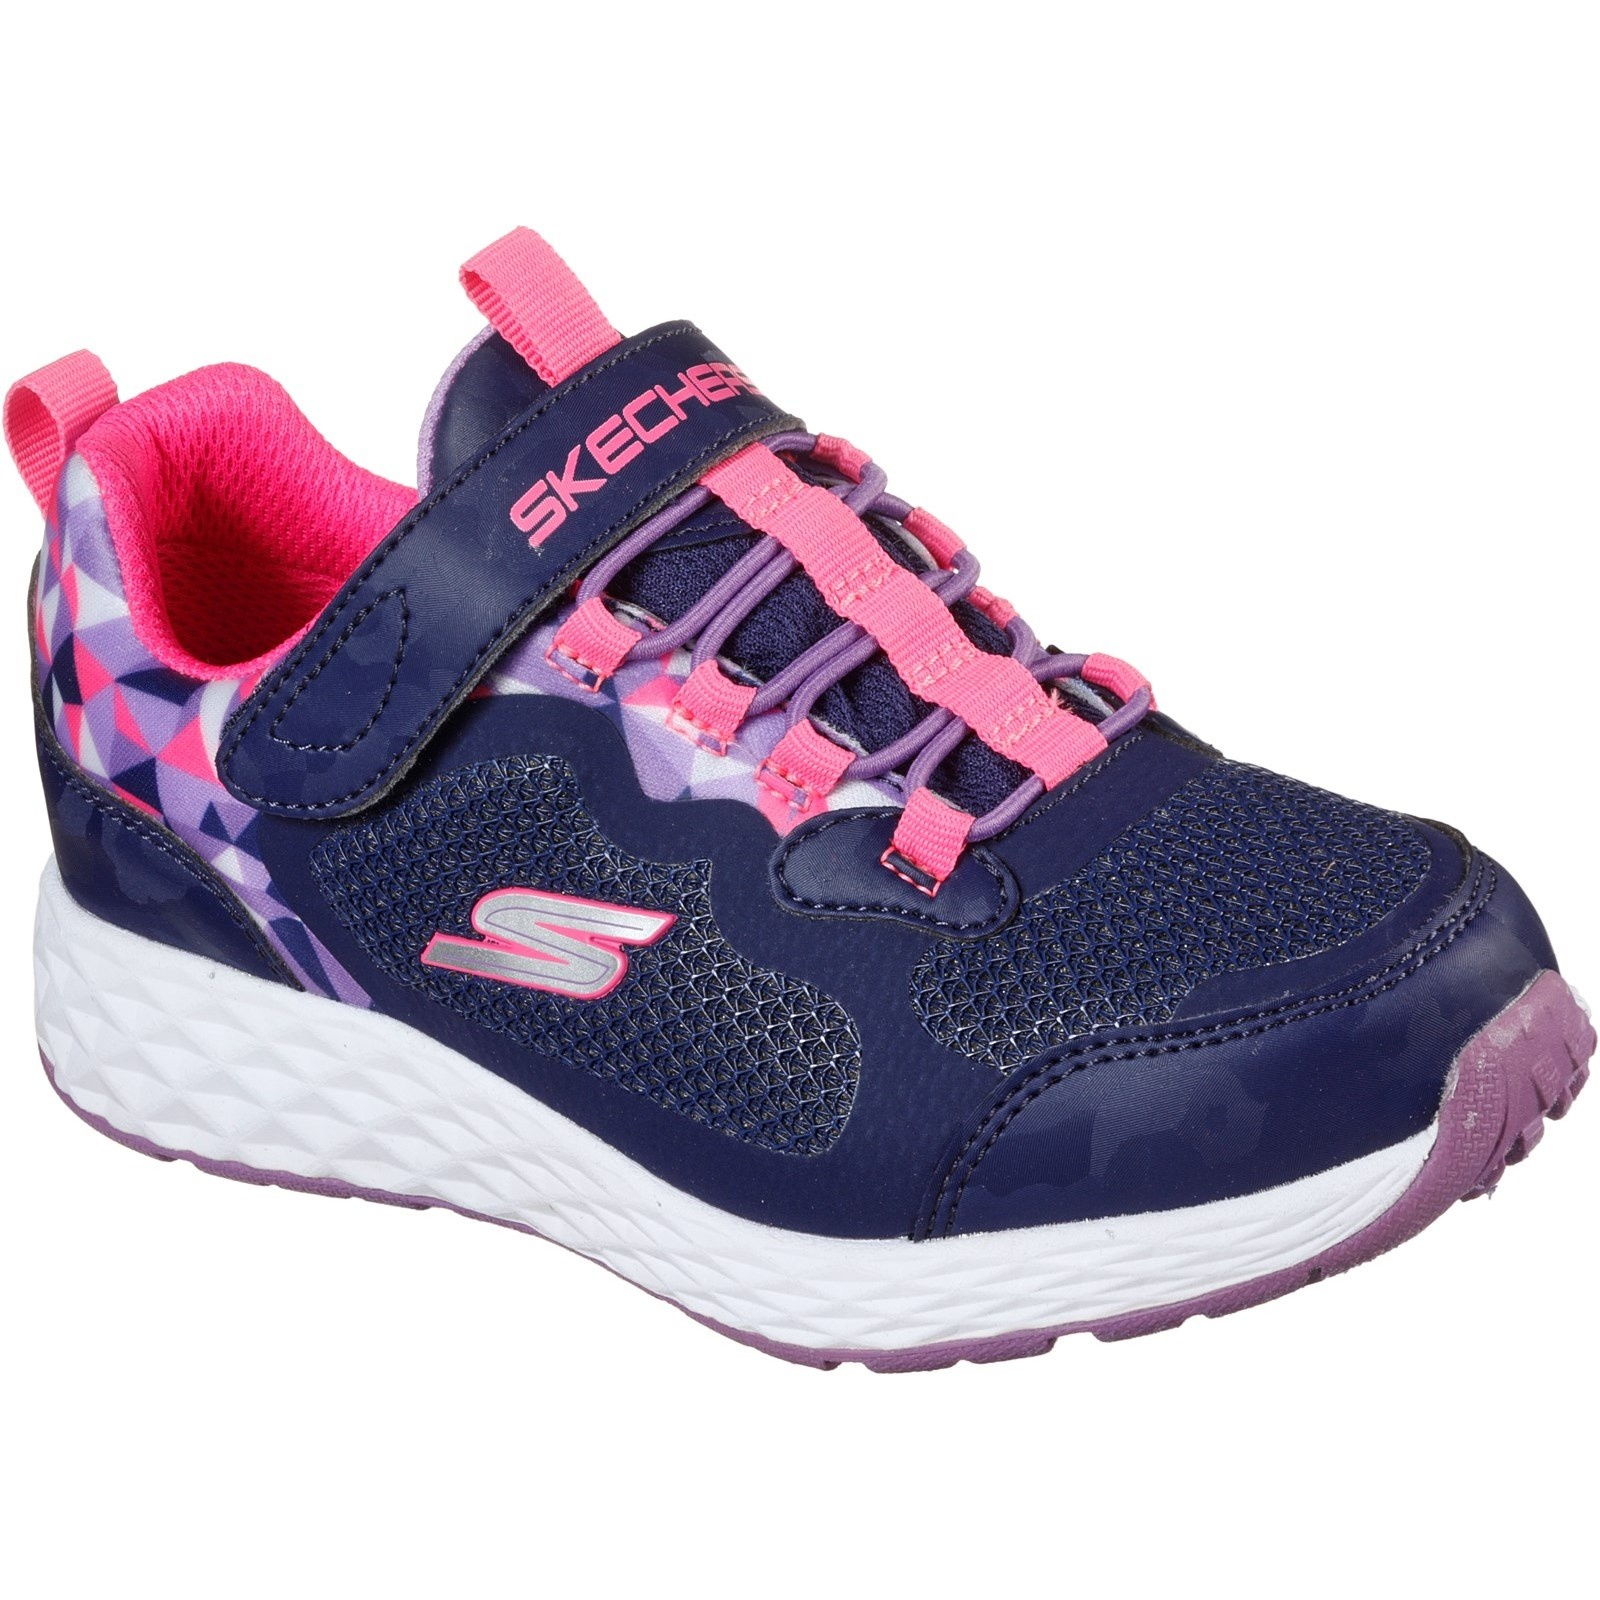 Skechers Tread Lite Navy